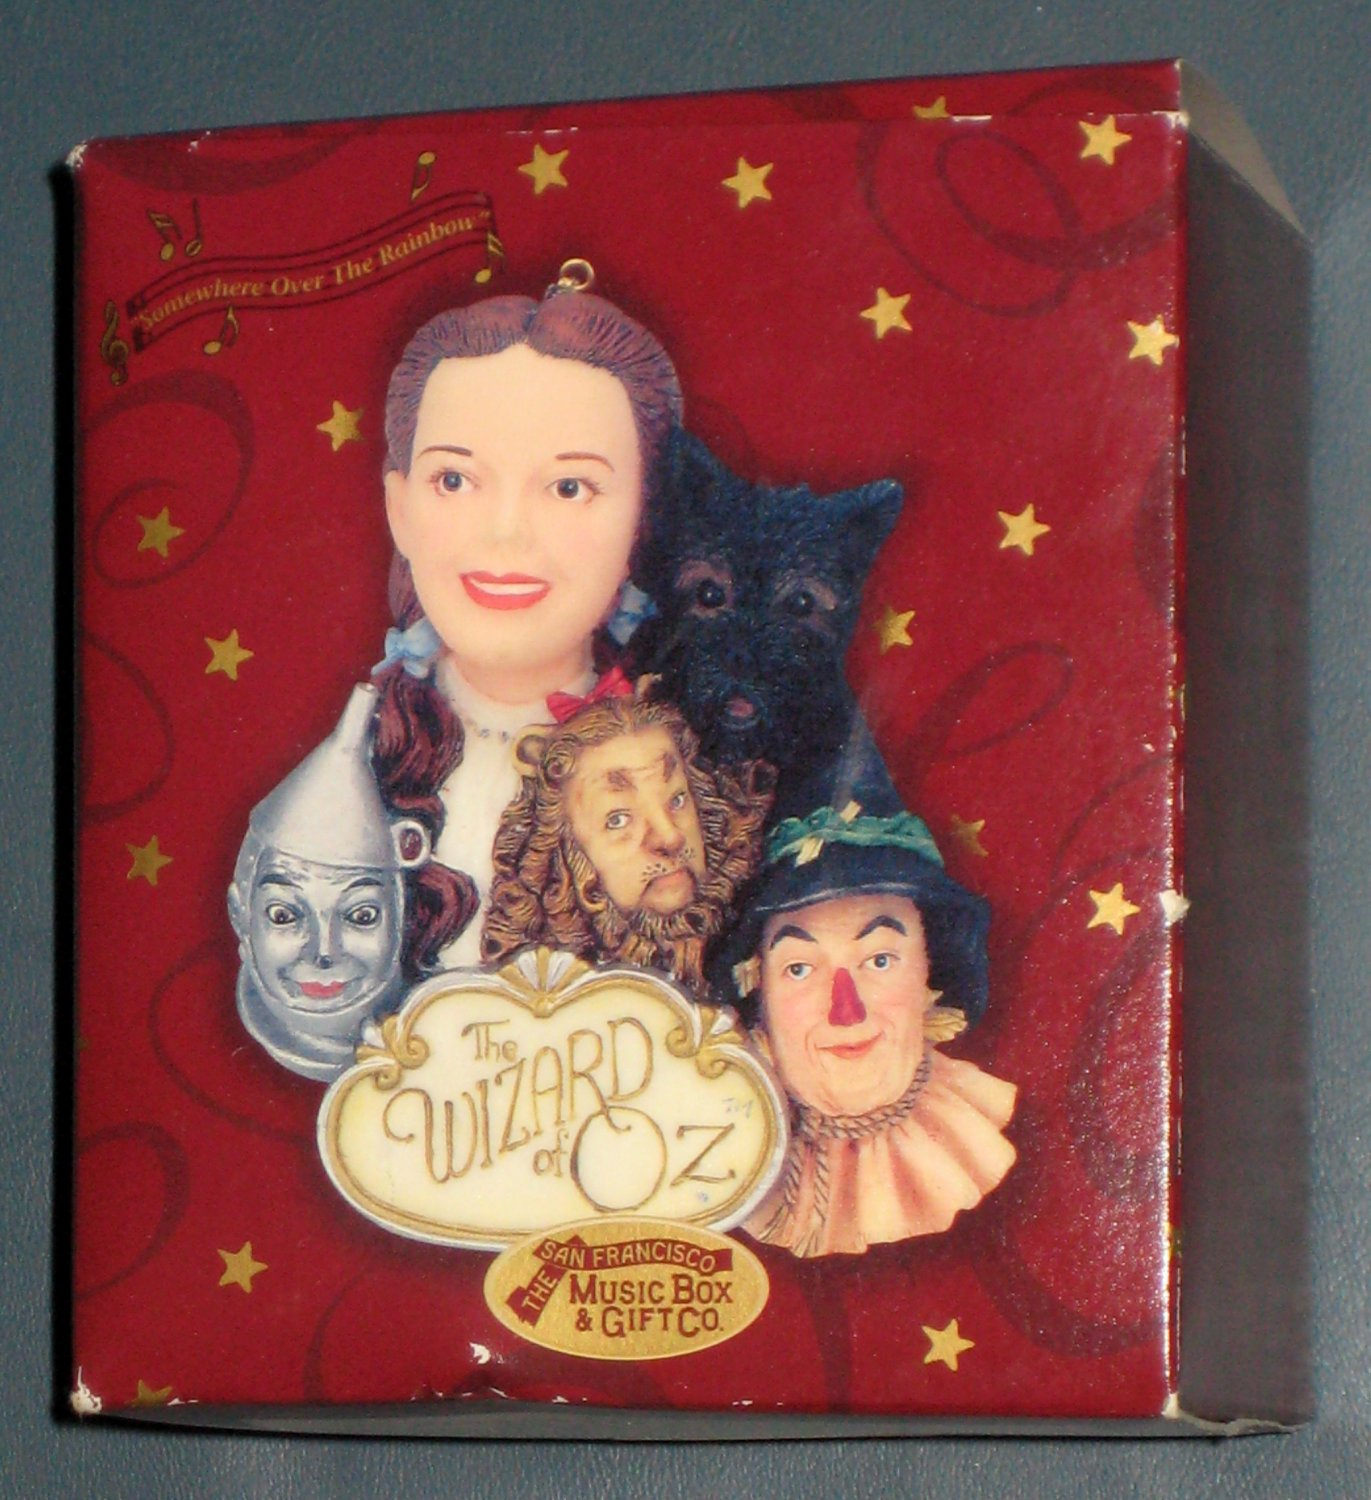 SOLD Wizard of Oz Musical Ornament Dorothy Toto Somewhere Over the Rainbow San Francisco Music Box